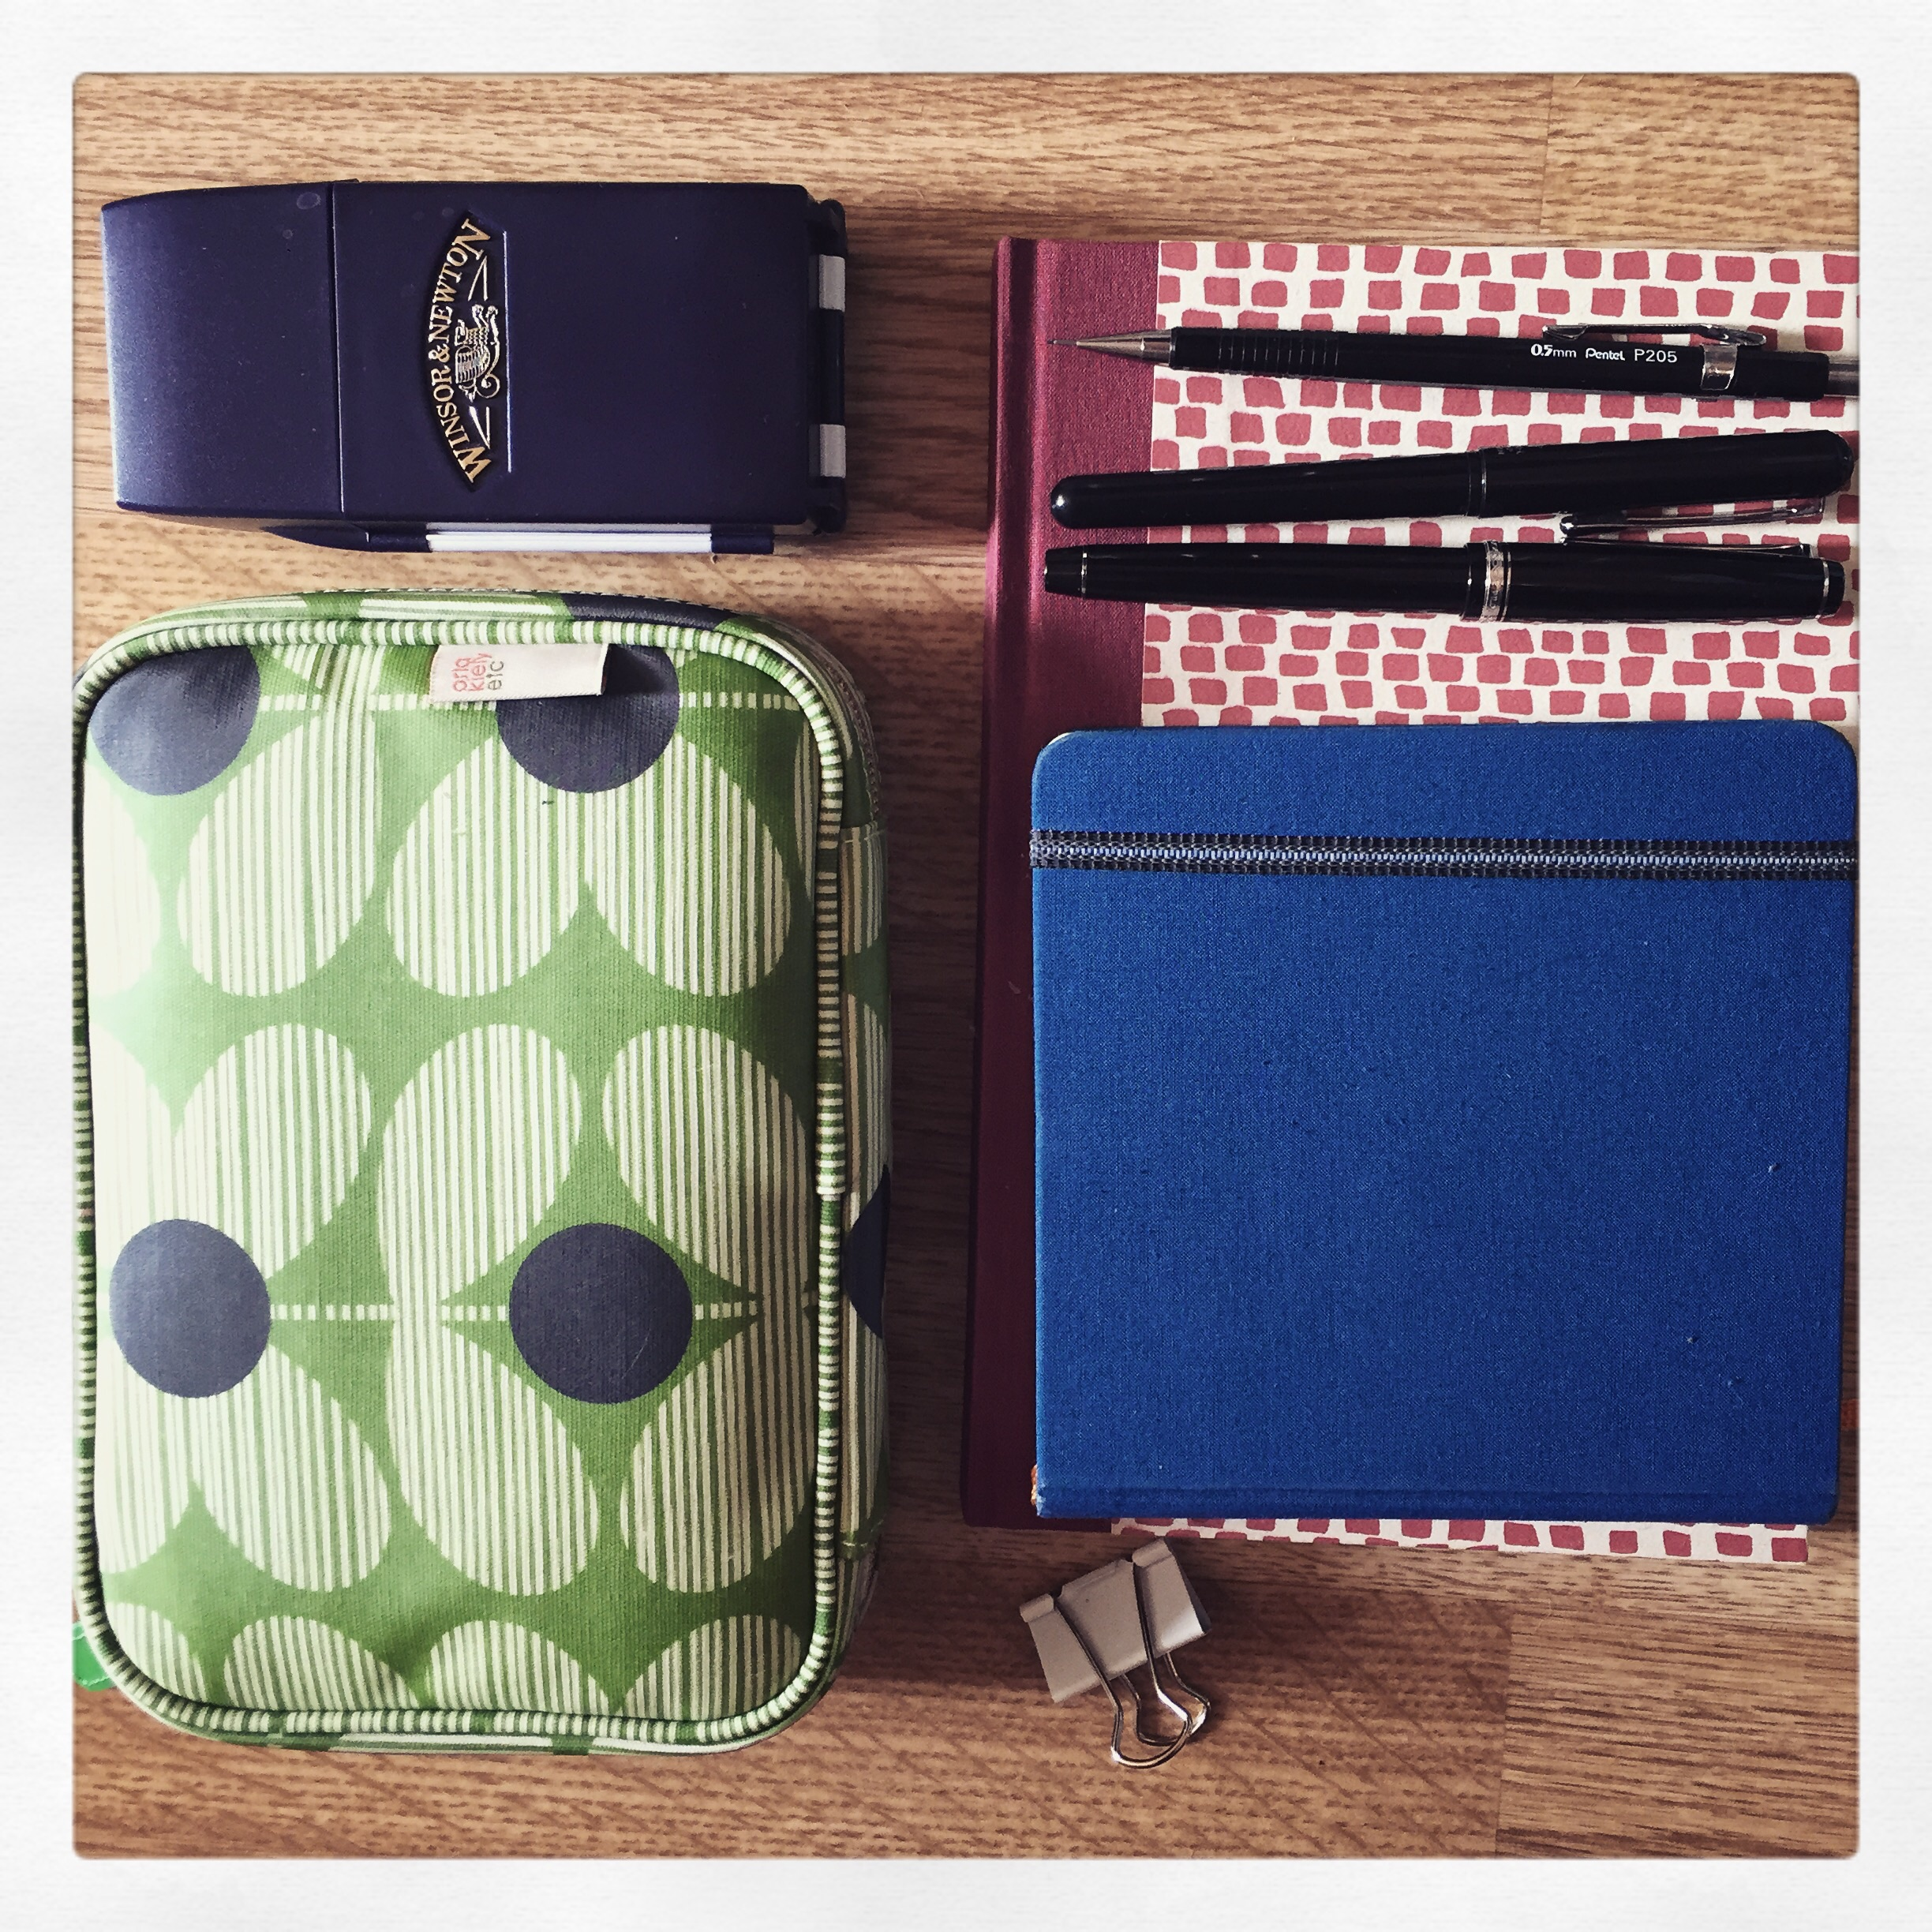 My maxed out sketching kit ready for Paris!